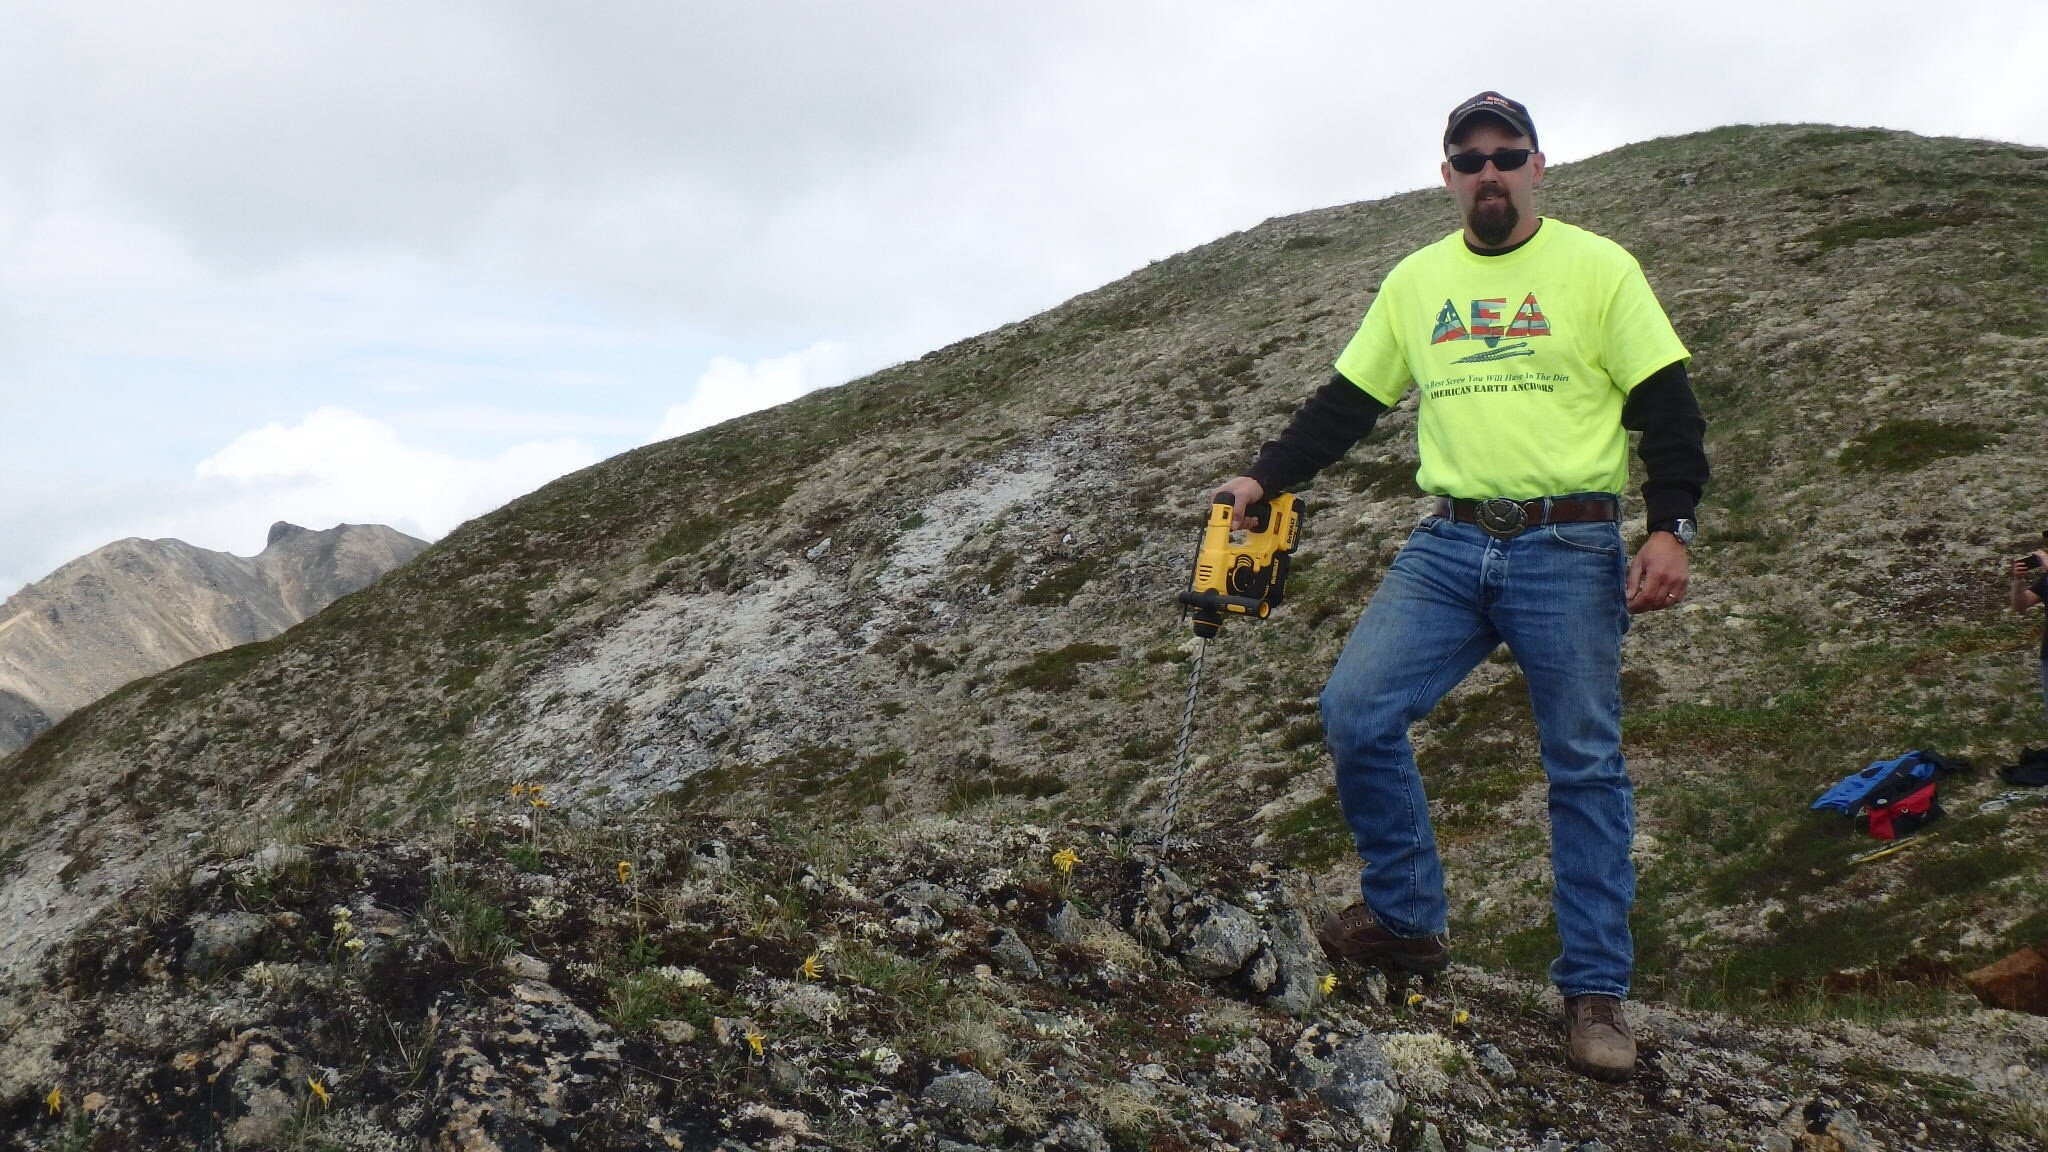 Pre-drilling into rock soil on mountain side before insalling bullet anchors